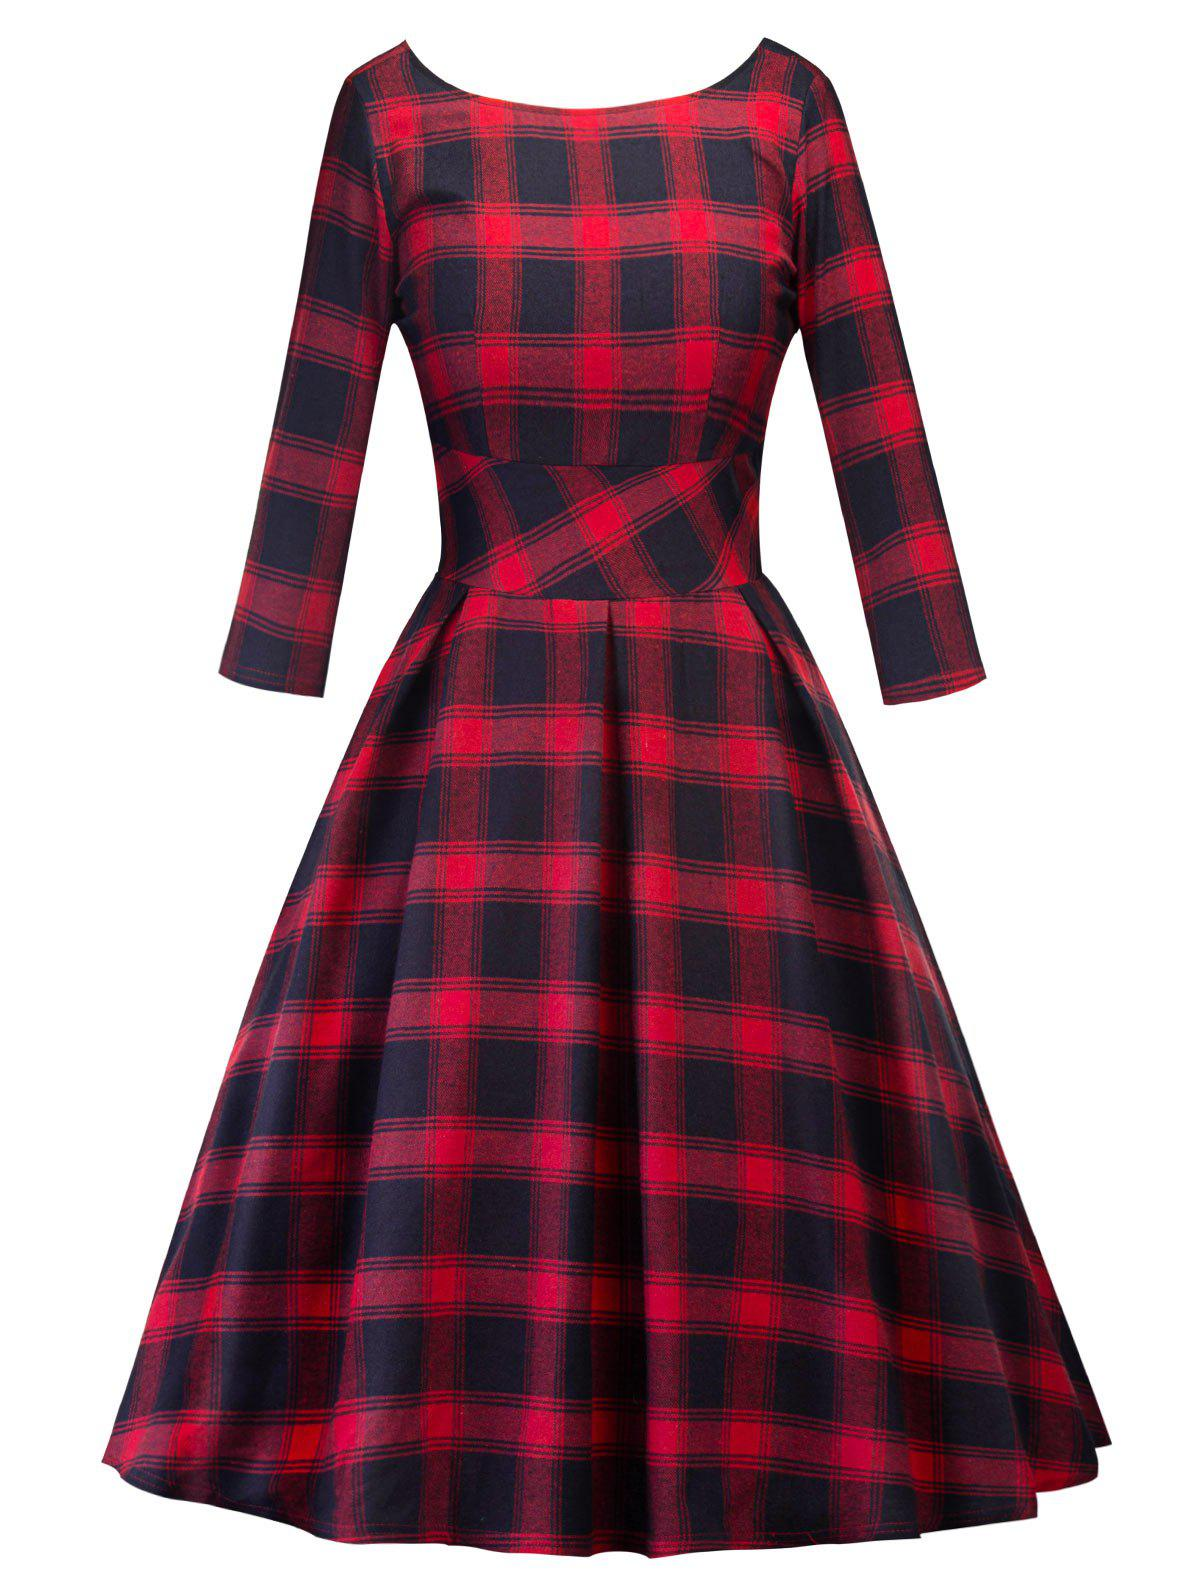 Retro Cut Out Plaid Fit and Flare Dress zip back fit and flared plaid dress